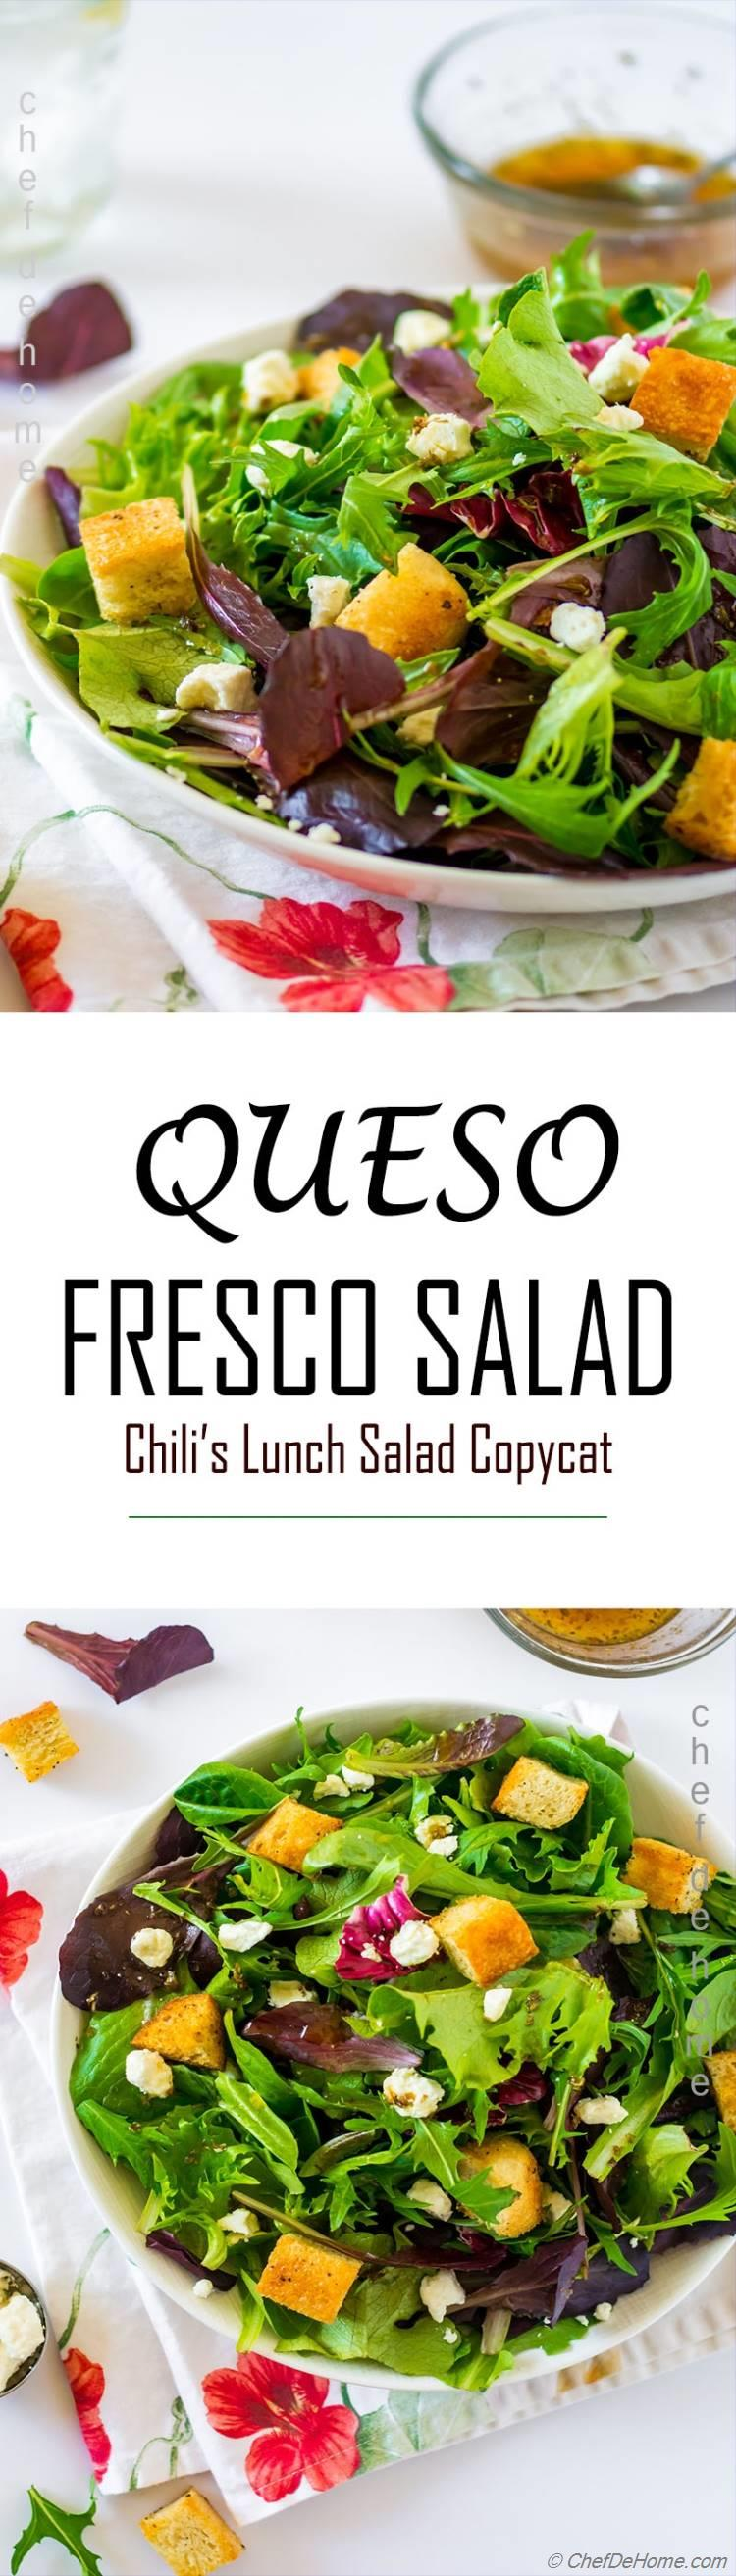 chilis fresco salad of spring greens, queso, and lemon honey dressing | chefdehome.com